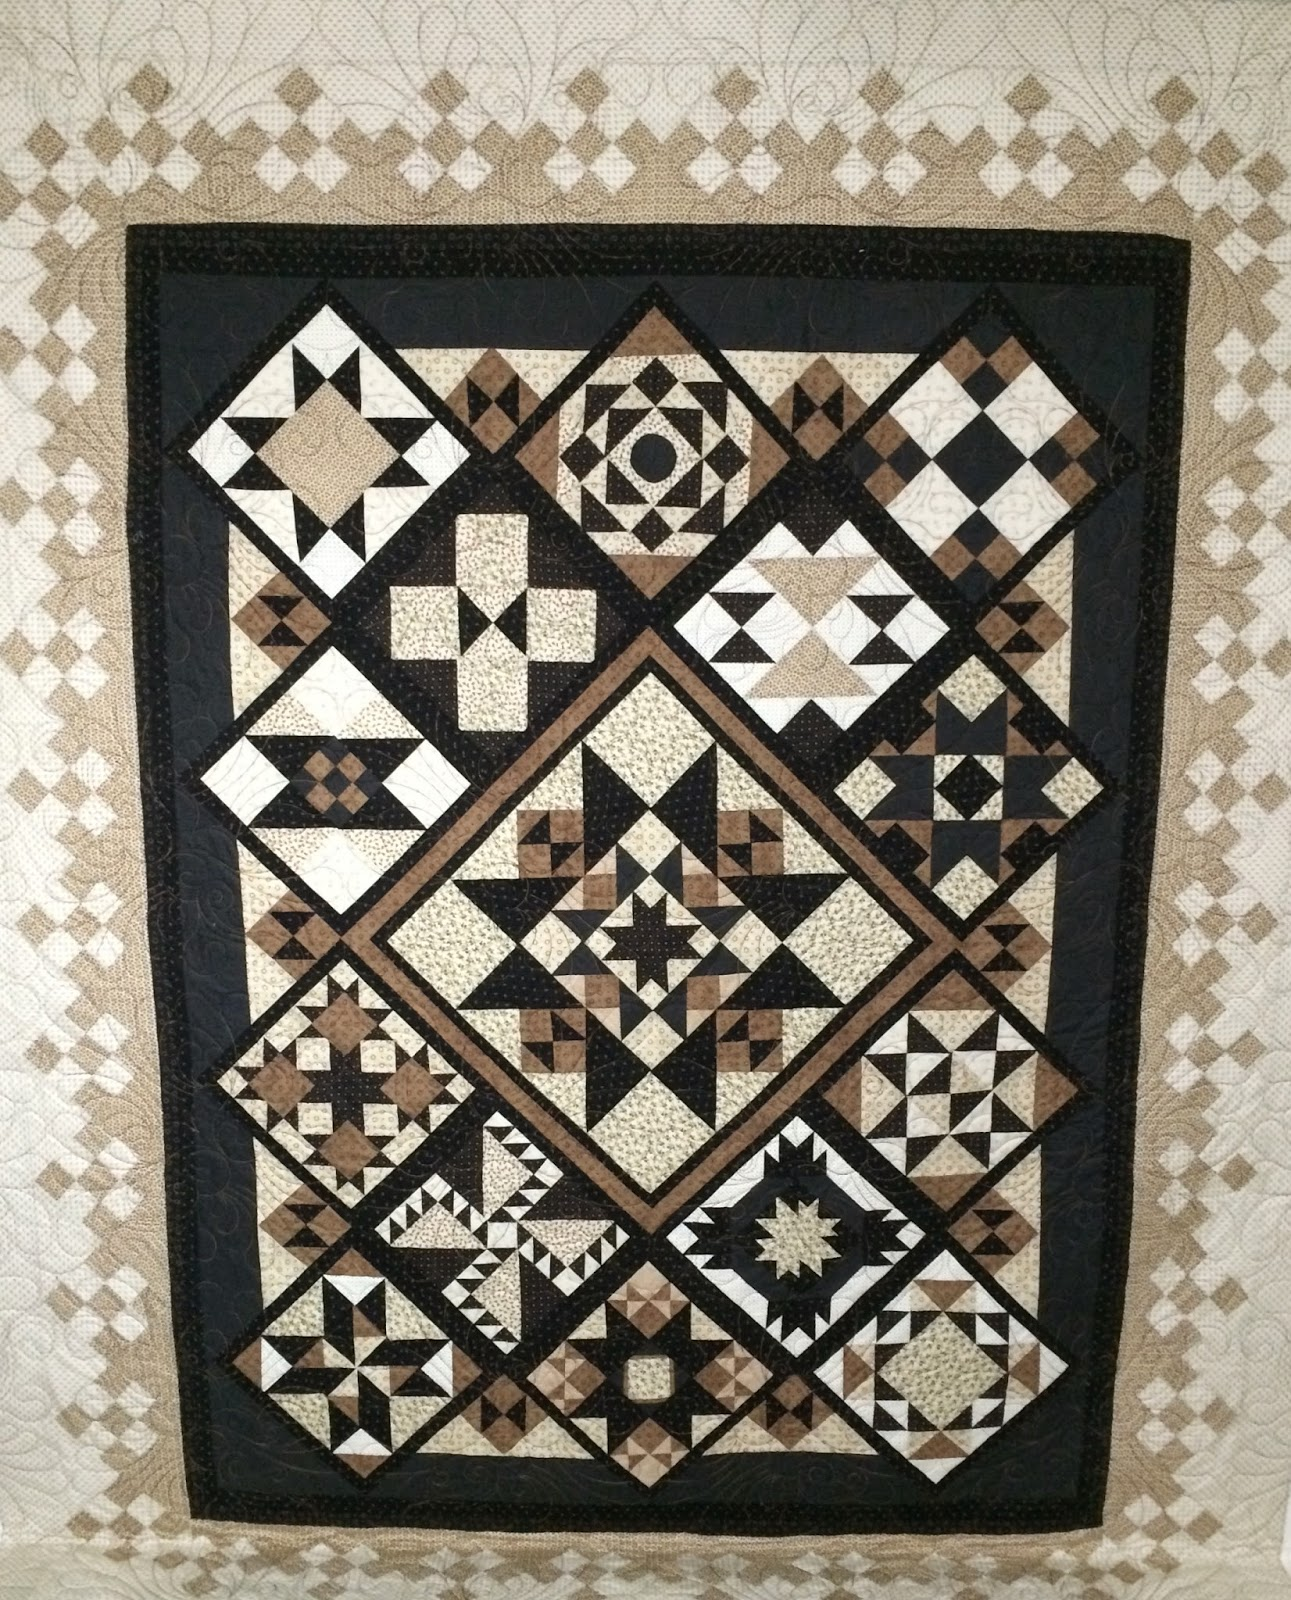 Sue Lindsay's Large Traditional Medallion Quilt